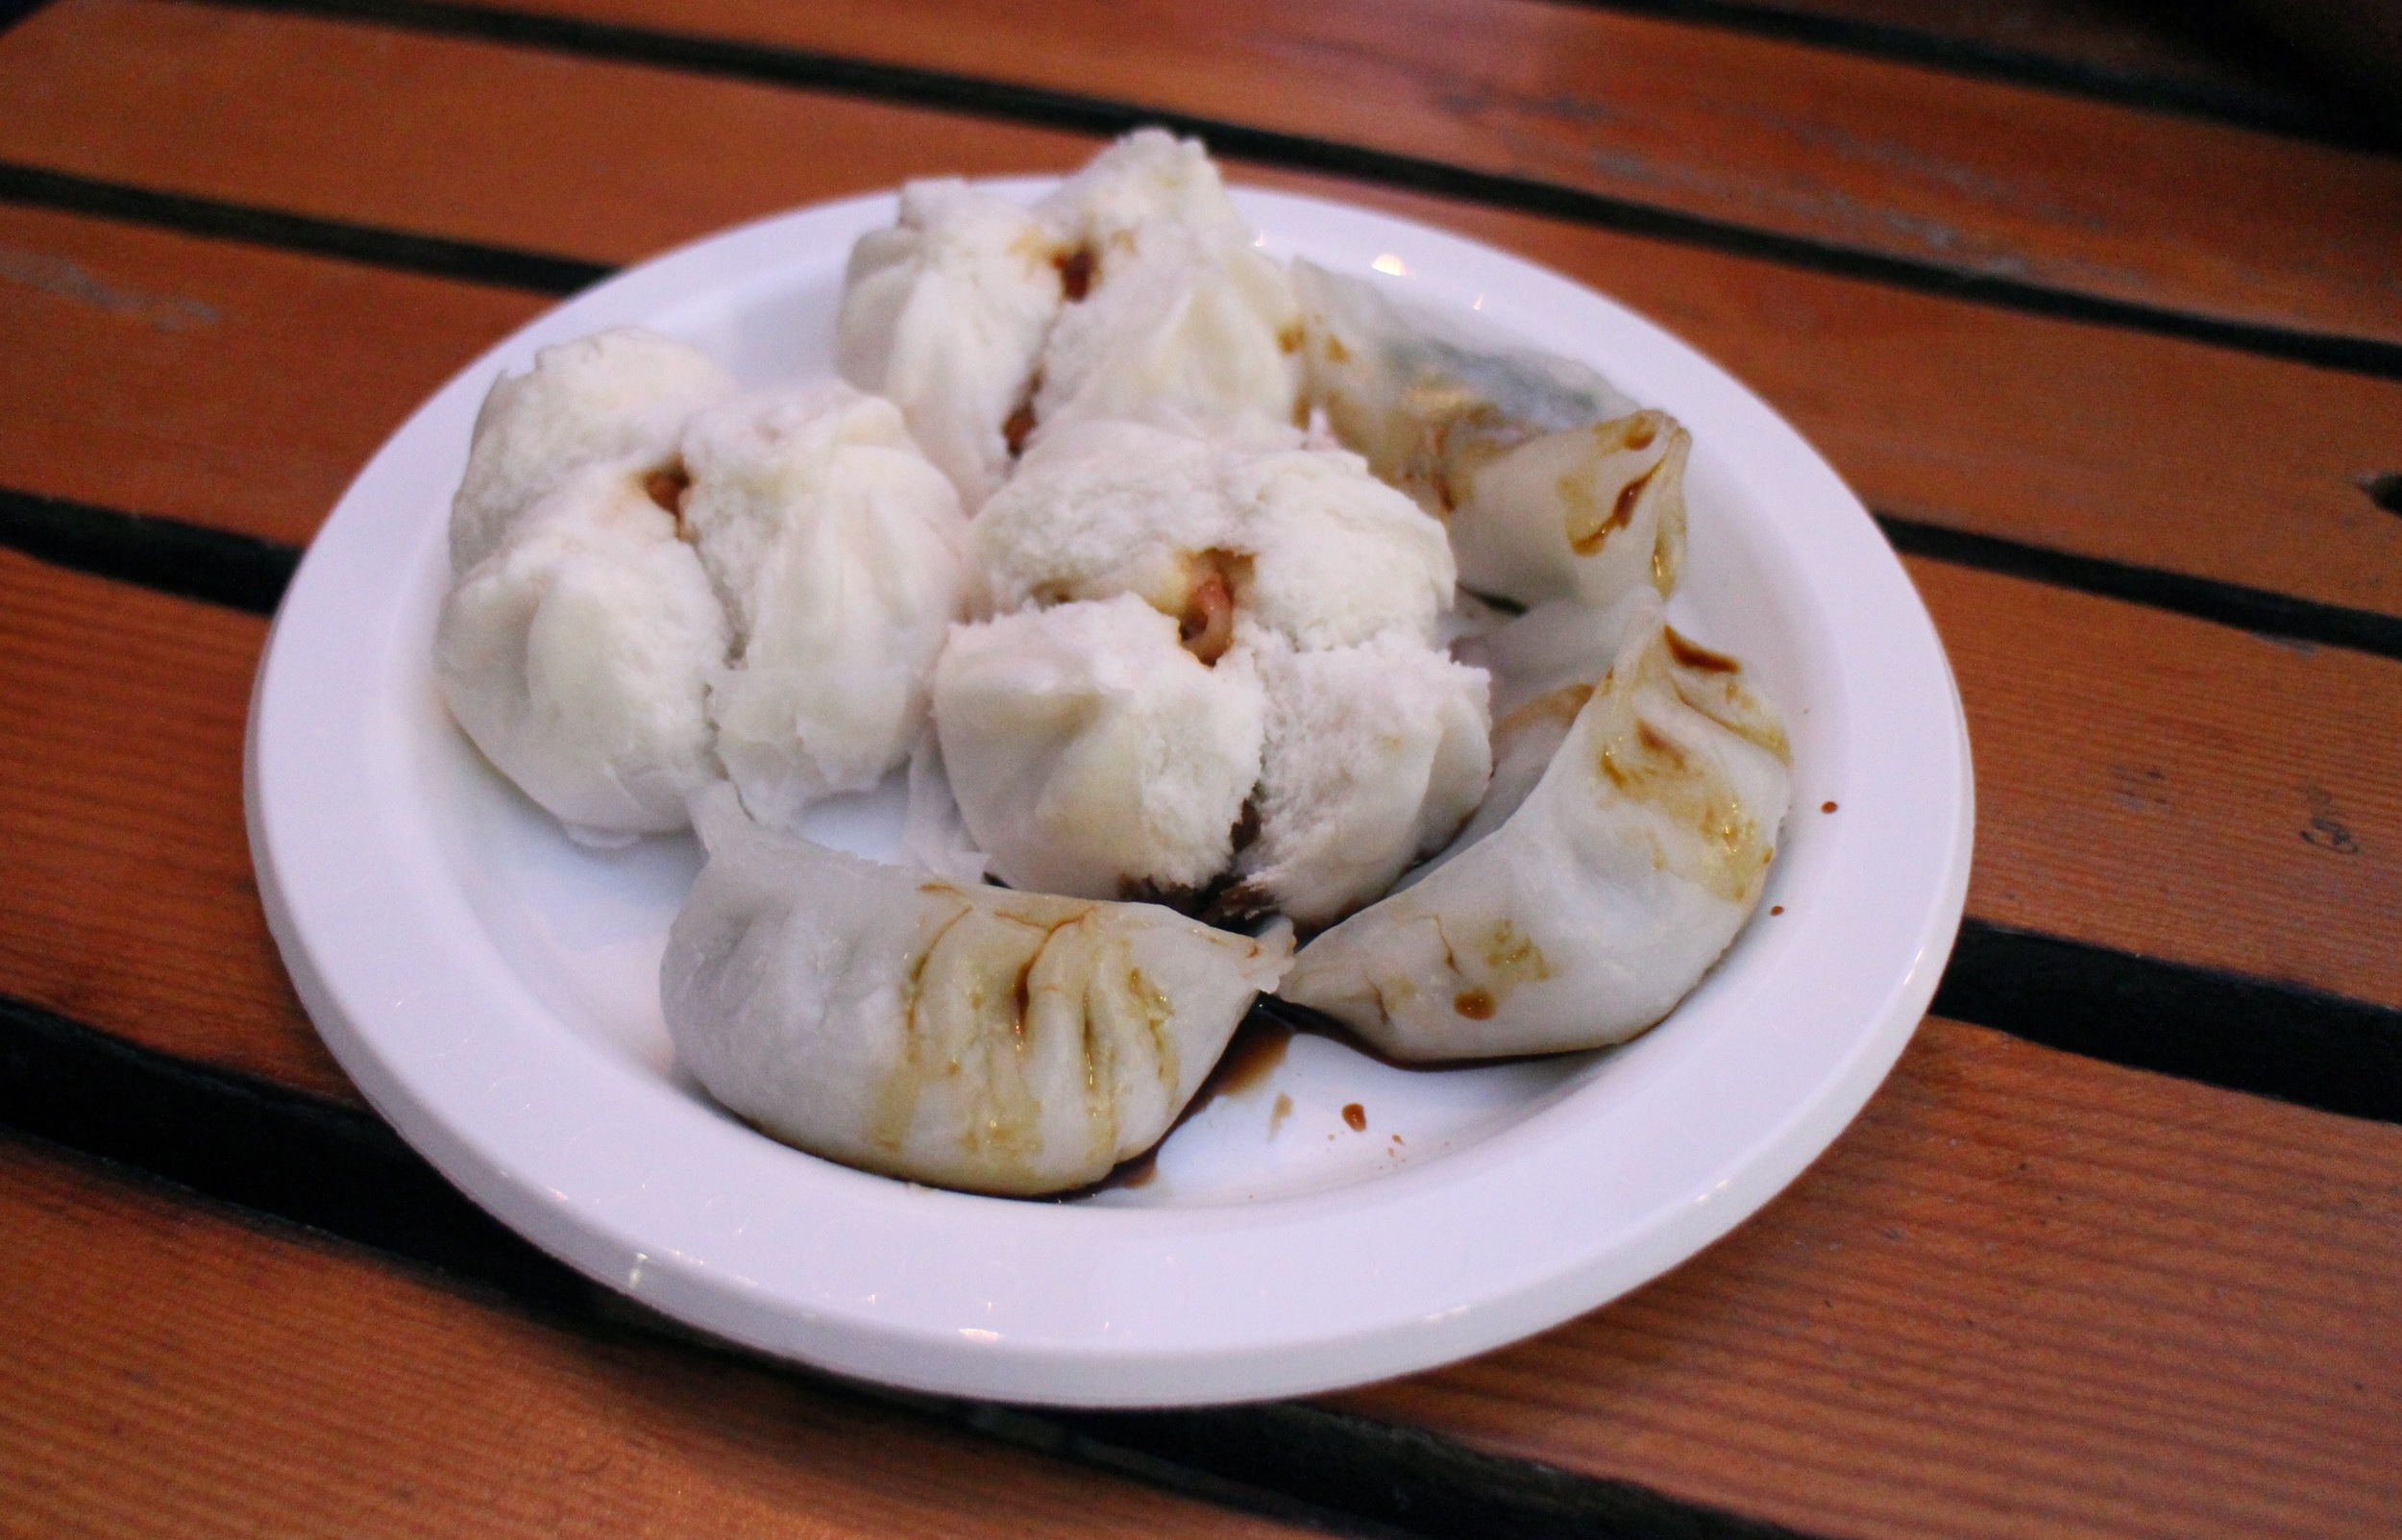 Who: Let's Do Yum Cha   Where: Central Square   What: Steamed BBQ pork bao, Prawn andchive dumplings Tip: The signs are a little deceiving as they say 6 for $15. You can make up a plate of 6 different yum cha morsels for $15.